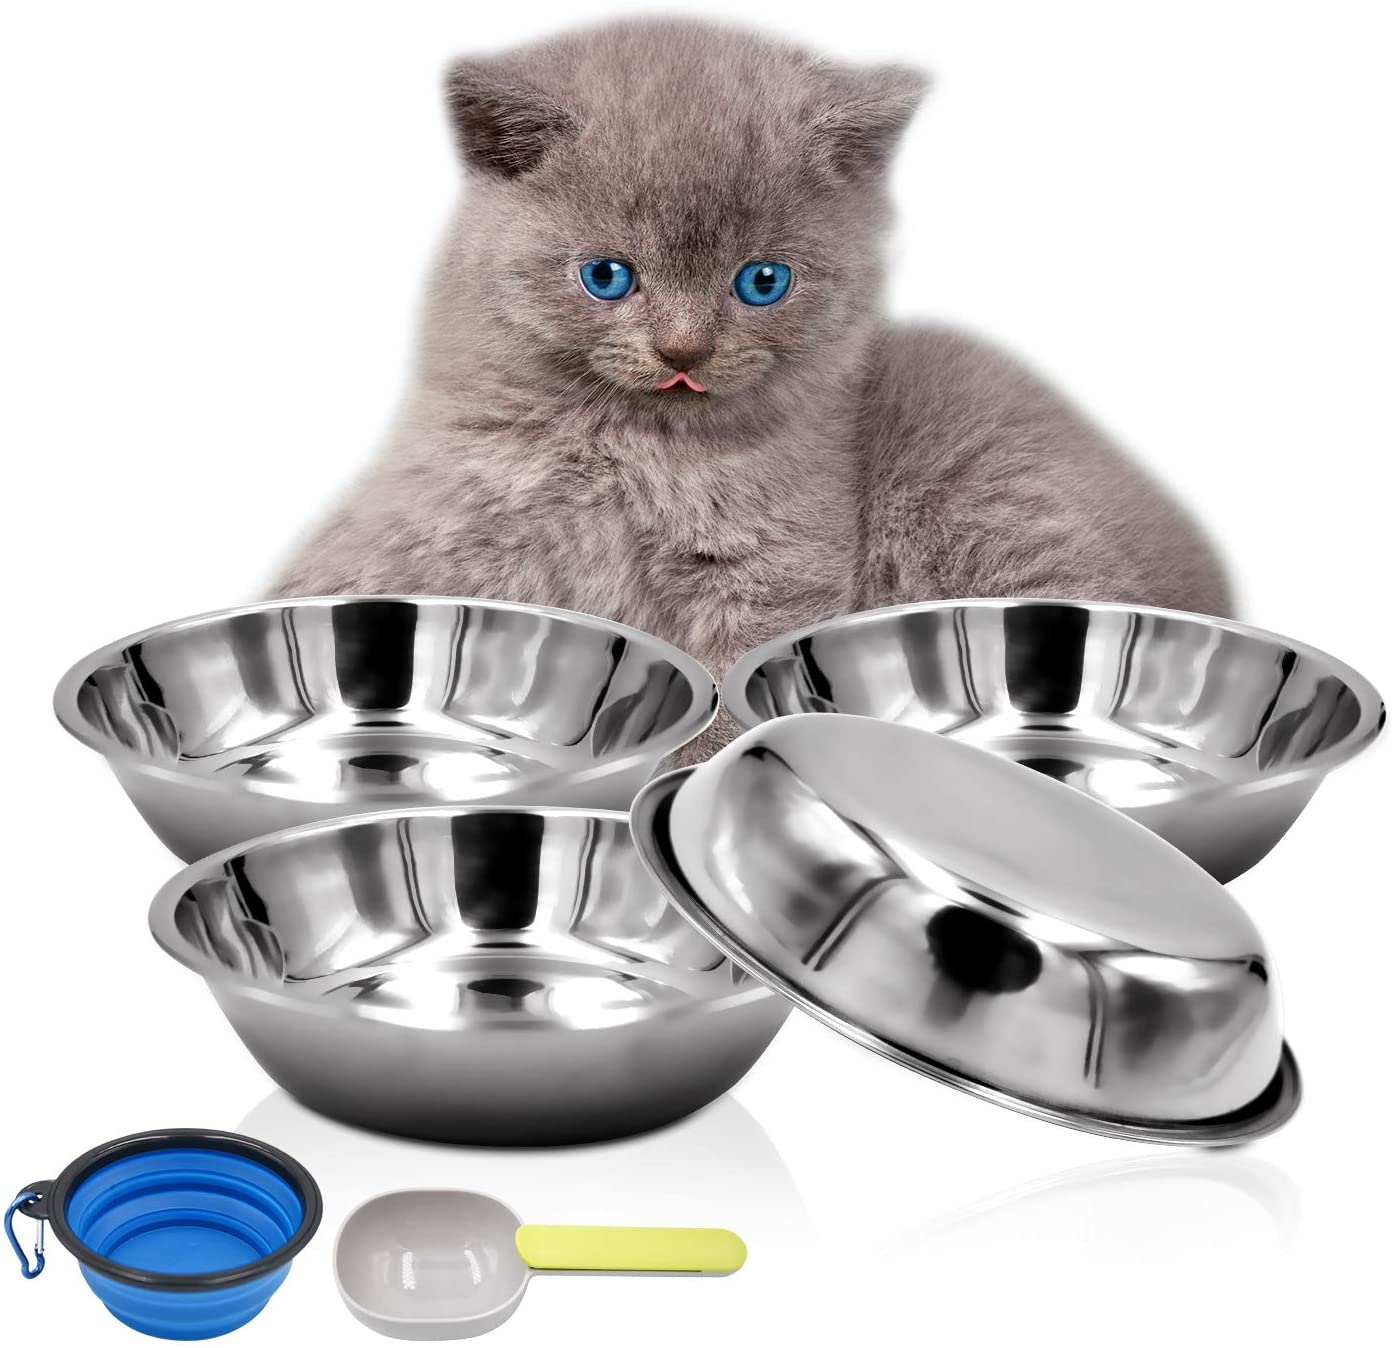 Bac-kitchen 4 Pcs Stainless Steel Dog and Cat Food Dish/Bowls, Shallow Cat Dish, Neater Feeder Extra Replacement Bowl -Metal Food and Water Dish, for Small Dogs and Cats,12oz